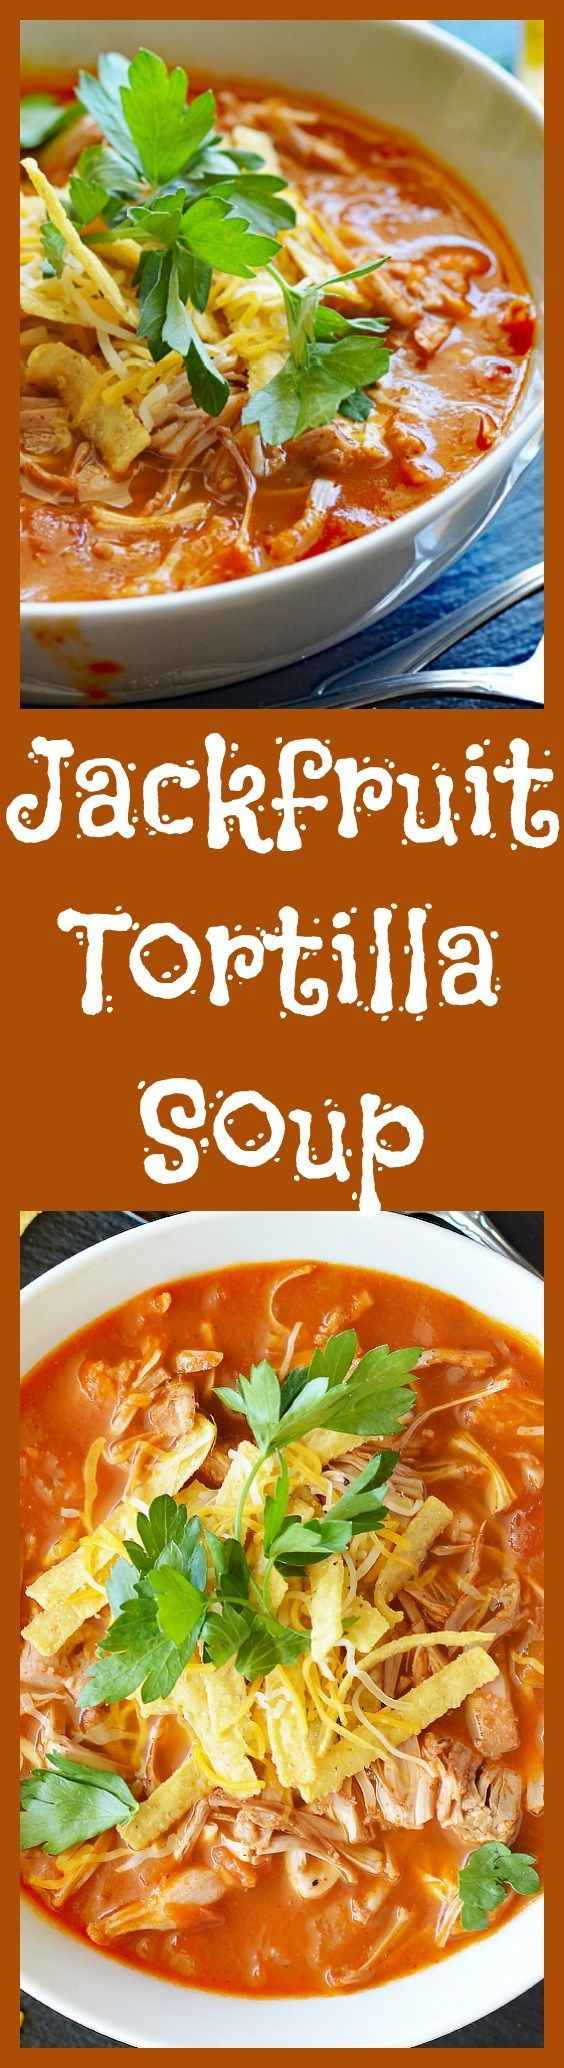 Homemade Jackfruit Tortilla Soup